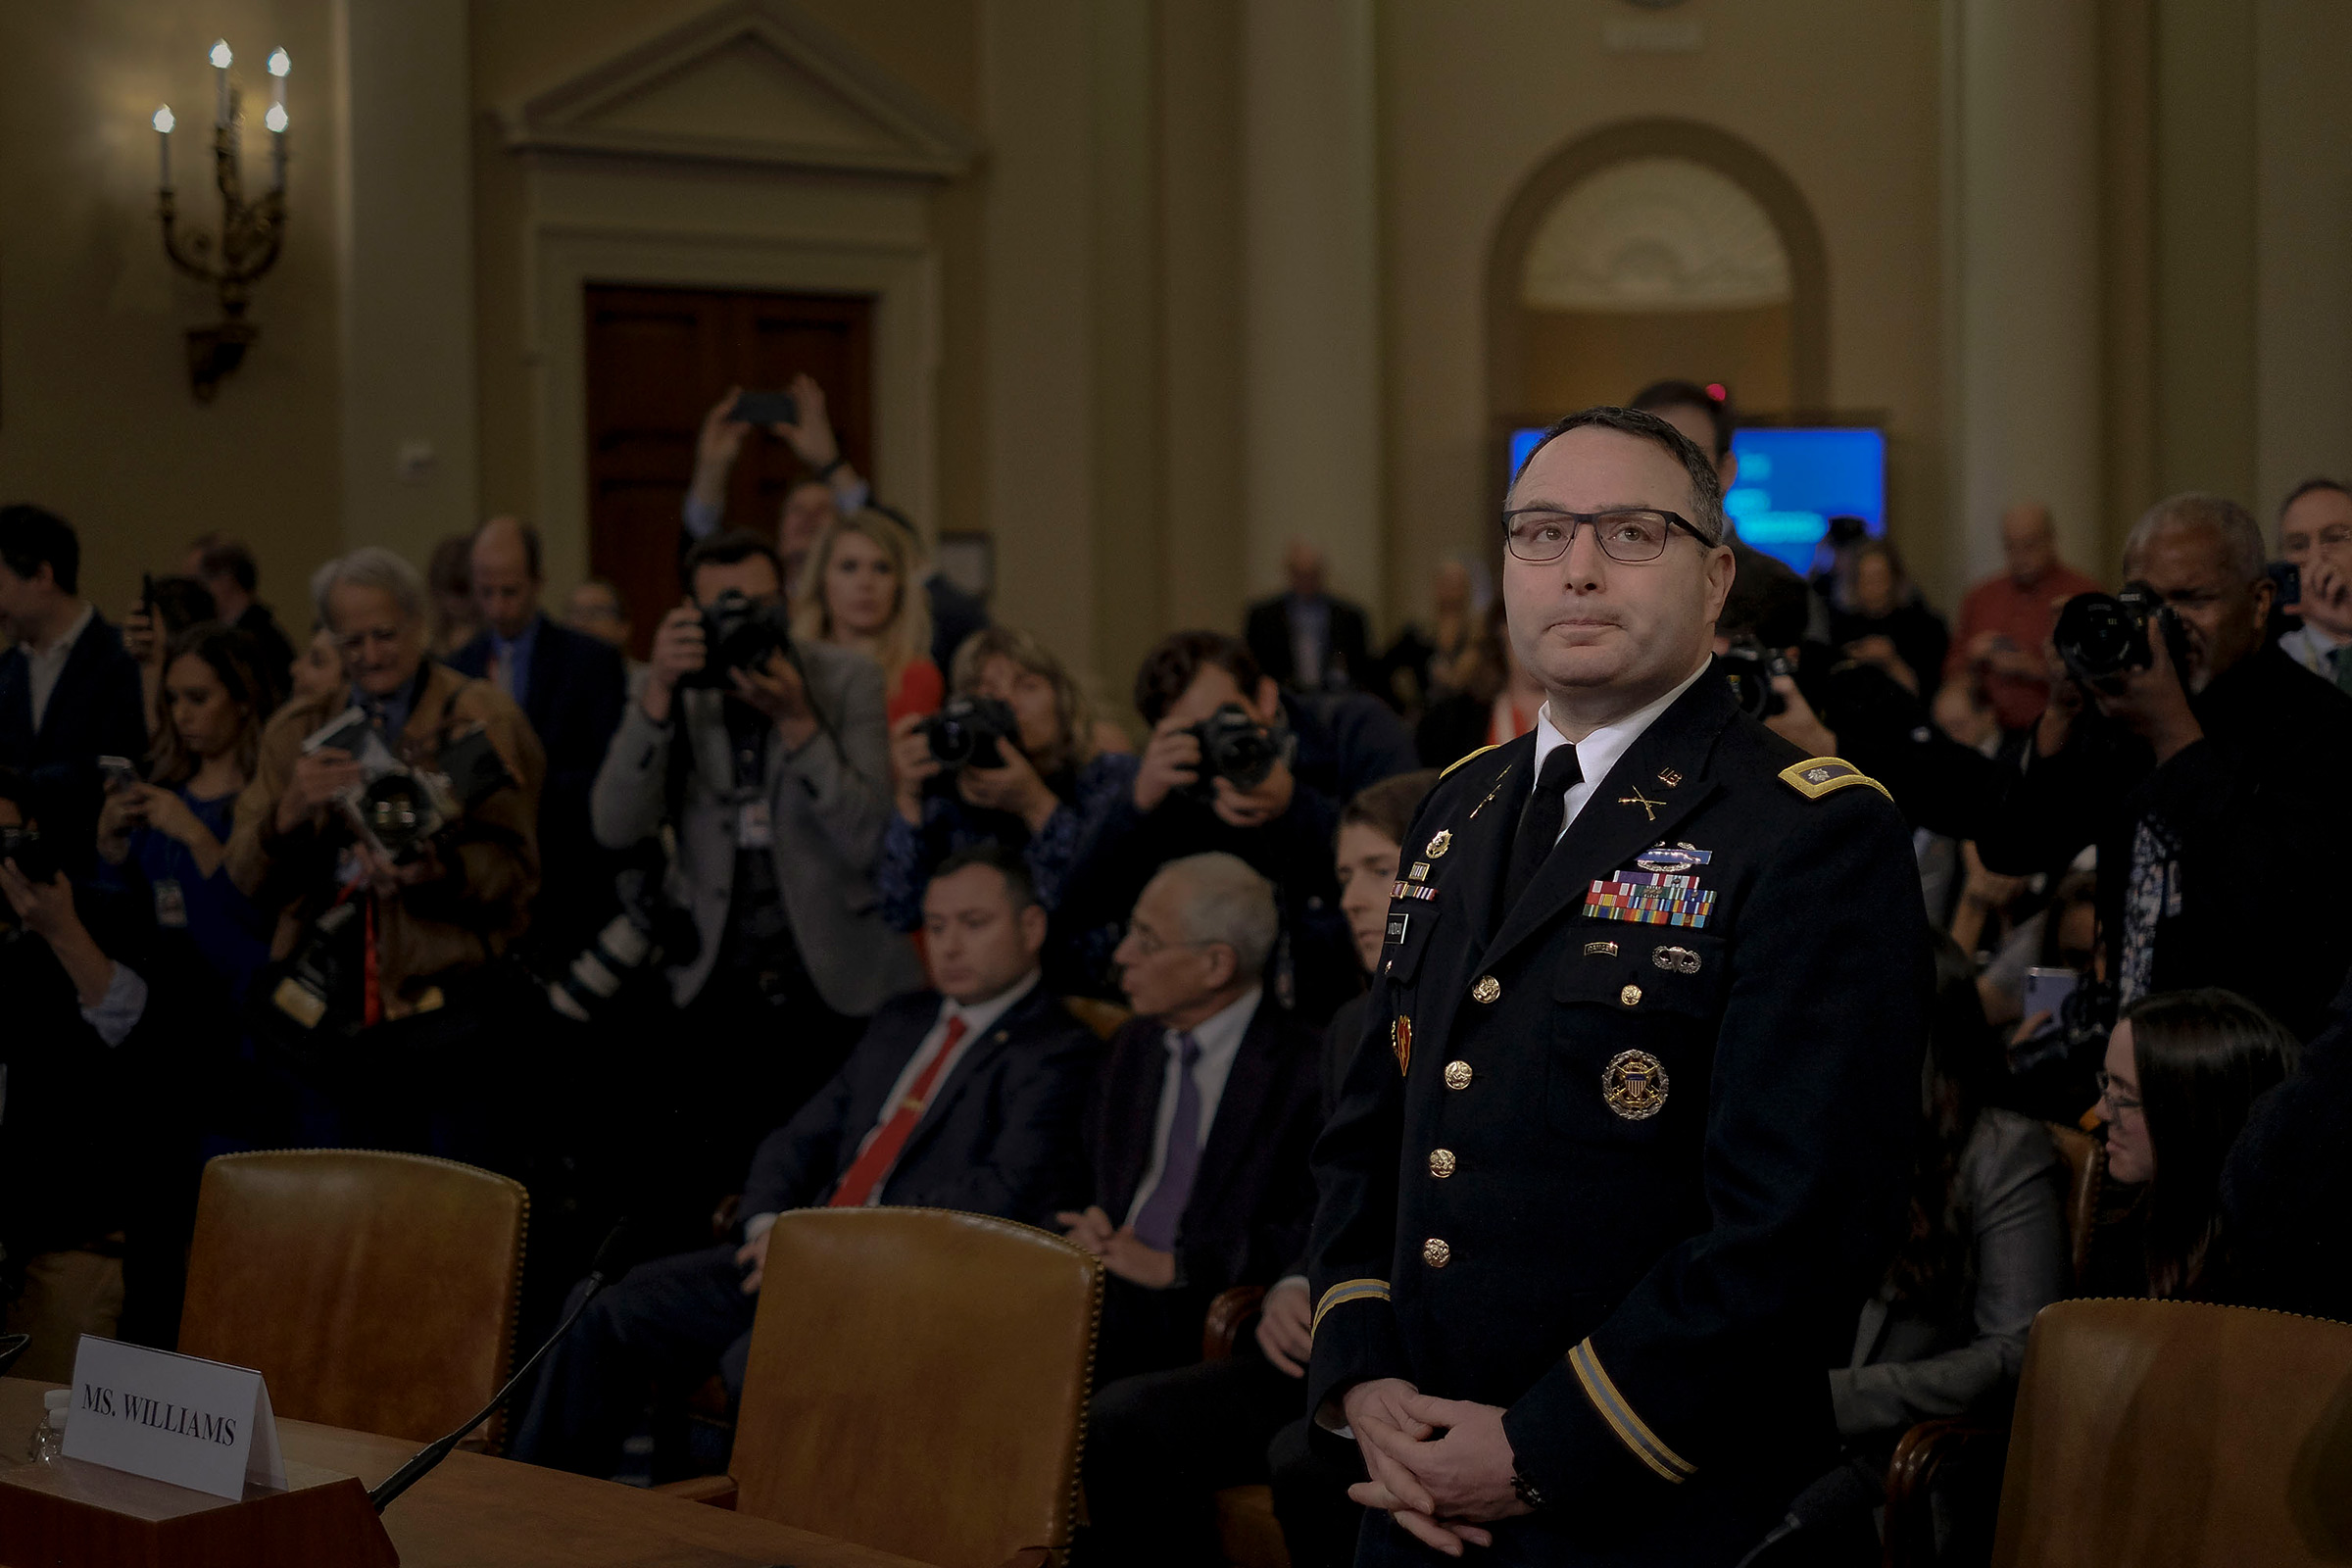 Witness Lt. Col. Alexander Vindeman, National Security Council staffer, enters the House Intelligence Committee hearing on the impeachment inquiry on Capitol Hill in Washington, D.C., Nov. 19, 2019.